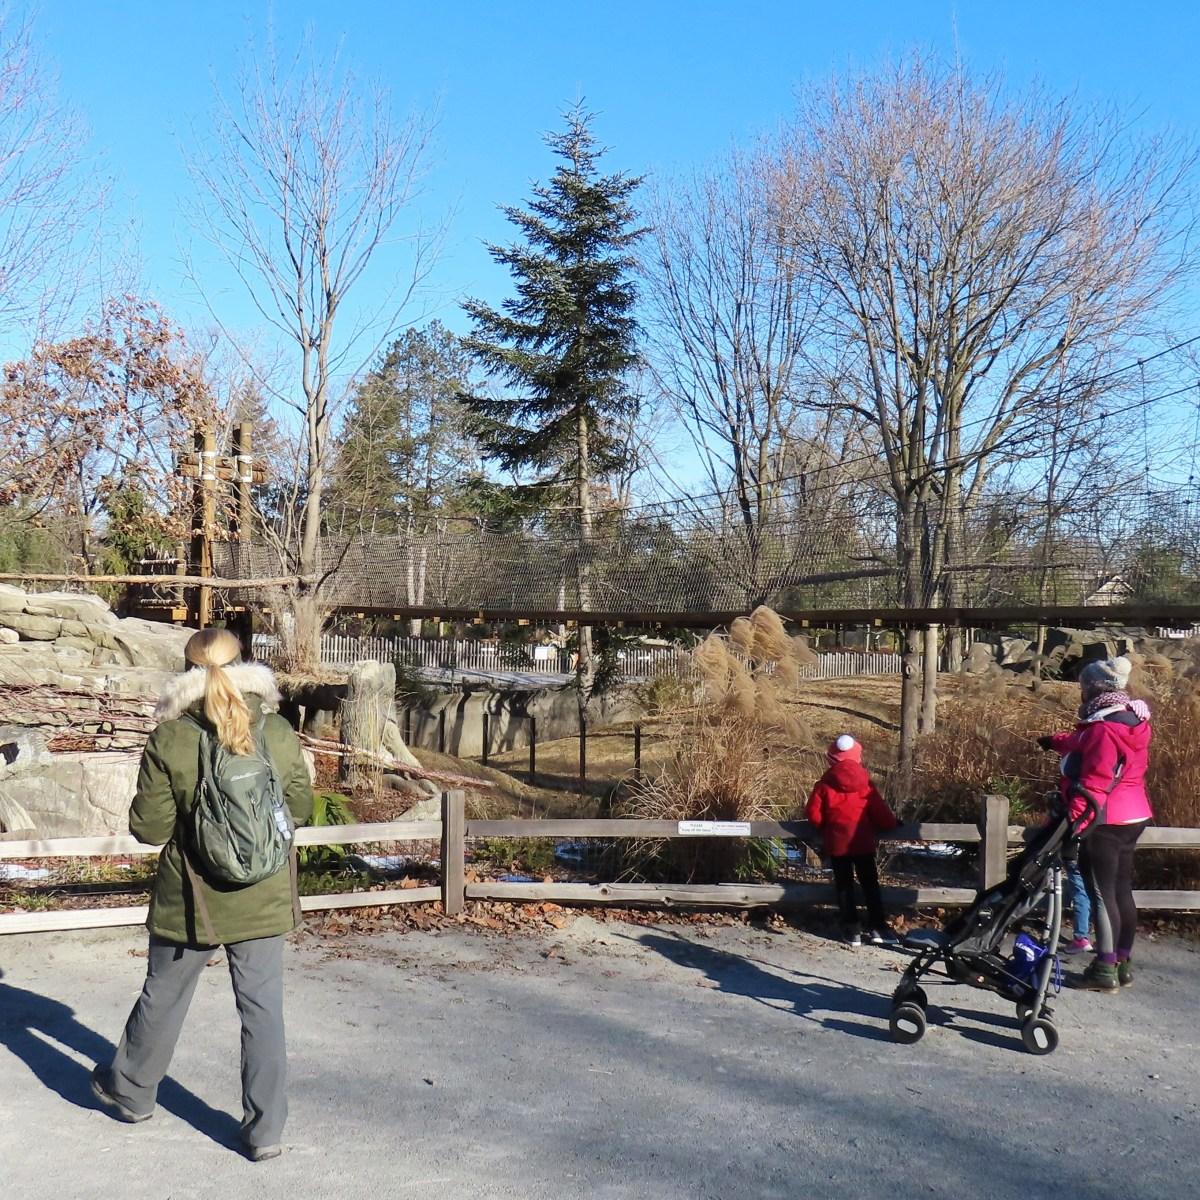 A woman and child observe a zoo enclosure on the right. Another woman approaches on the left.